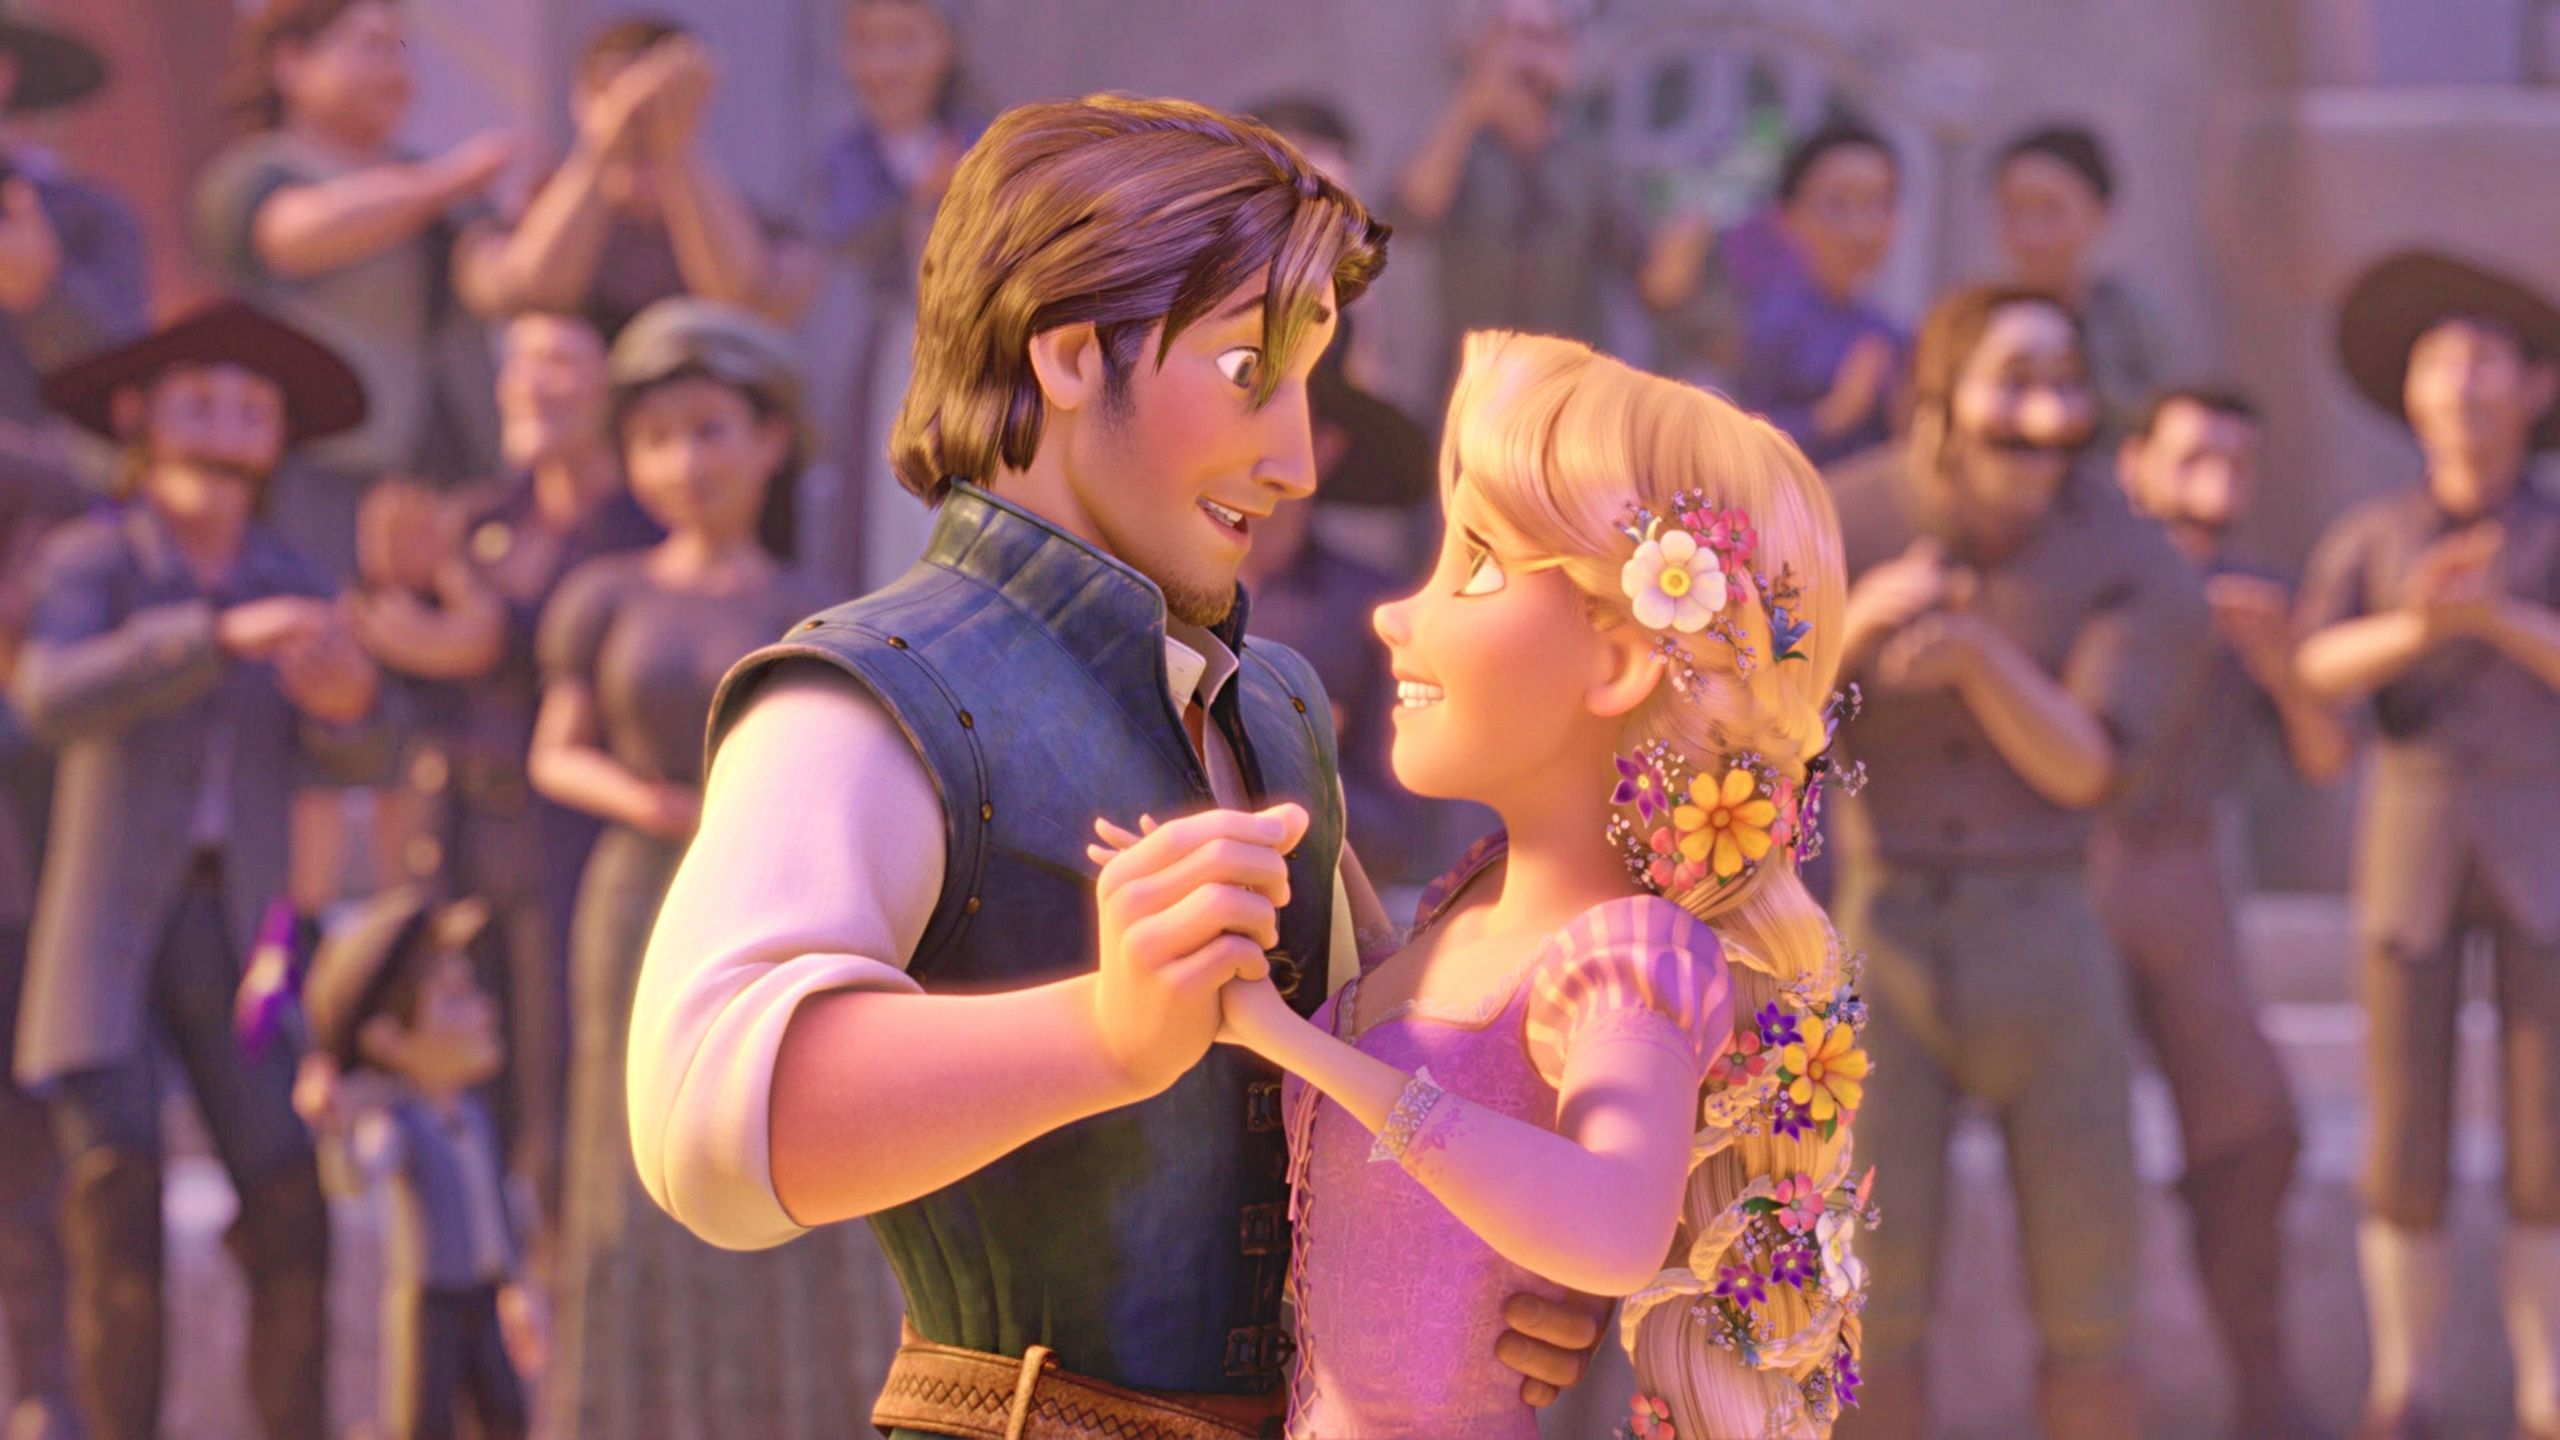 Princess Rapunzel And Prince Flynn | Disney | Pinterest | Rapunzel ... for Tangled Wallpaper Rapunzel And Flynn  557ylc